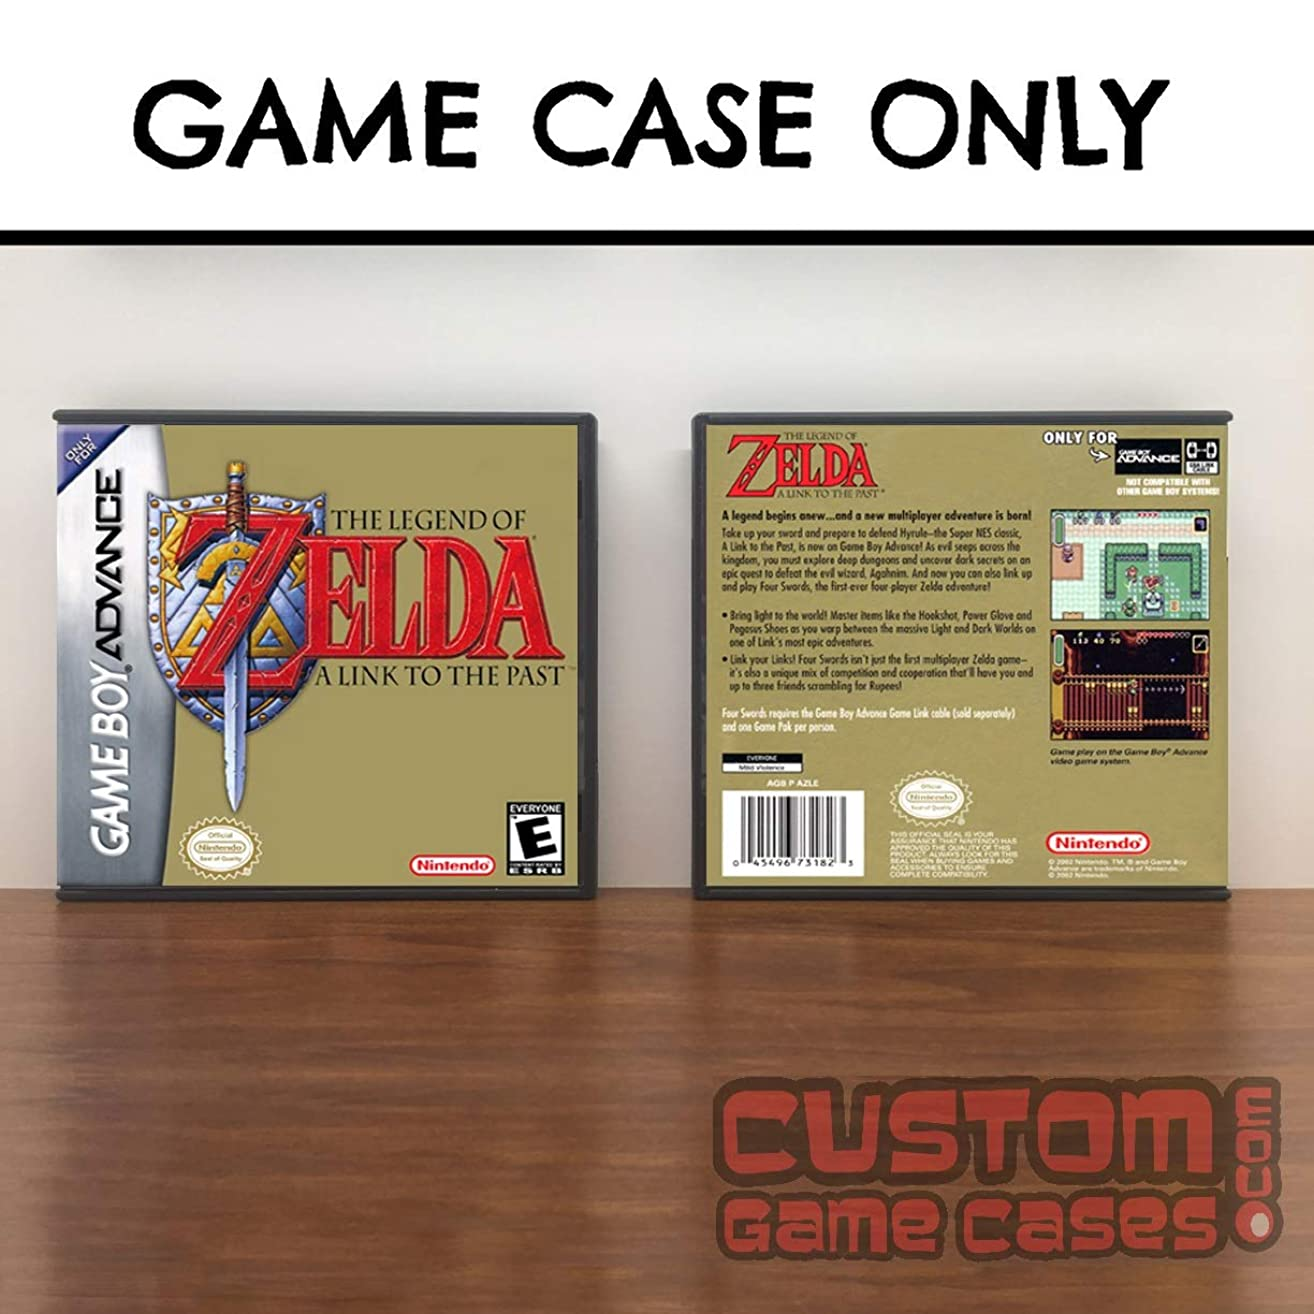 Gameboy Advance Legend of Zelda ,The: A Link to the Past - Case